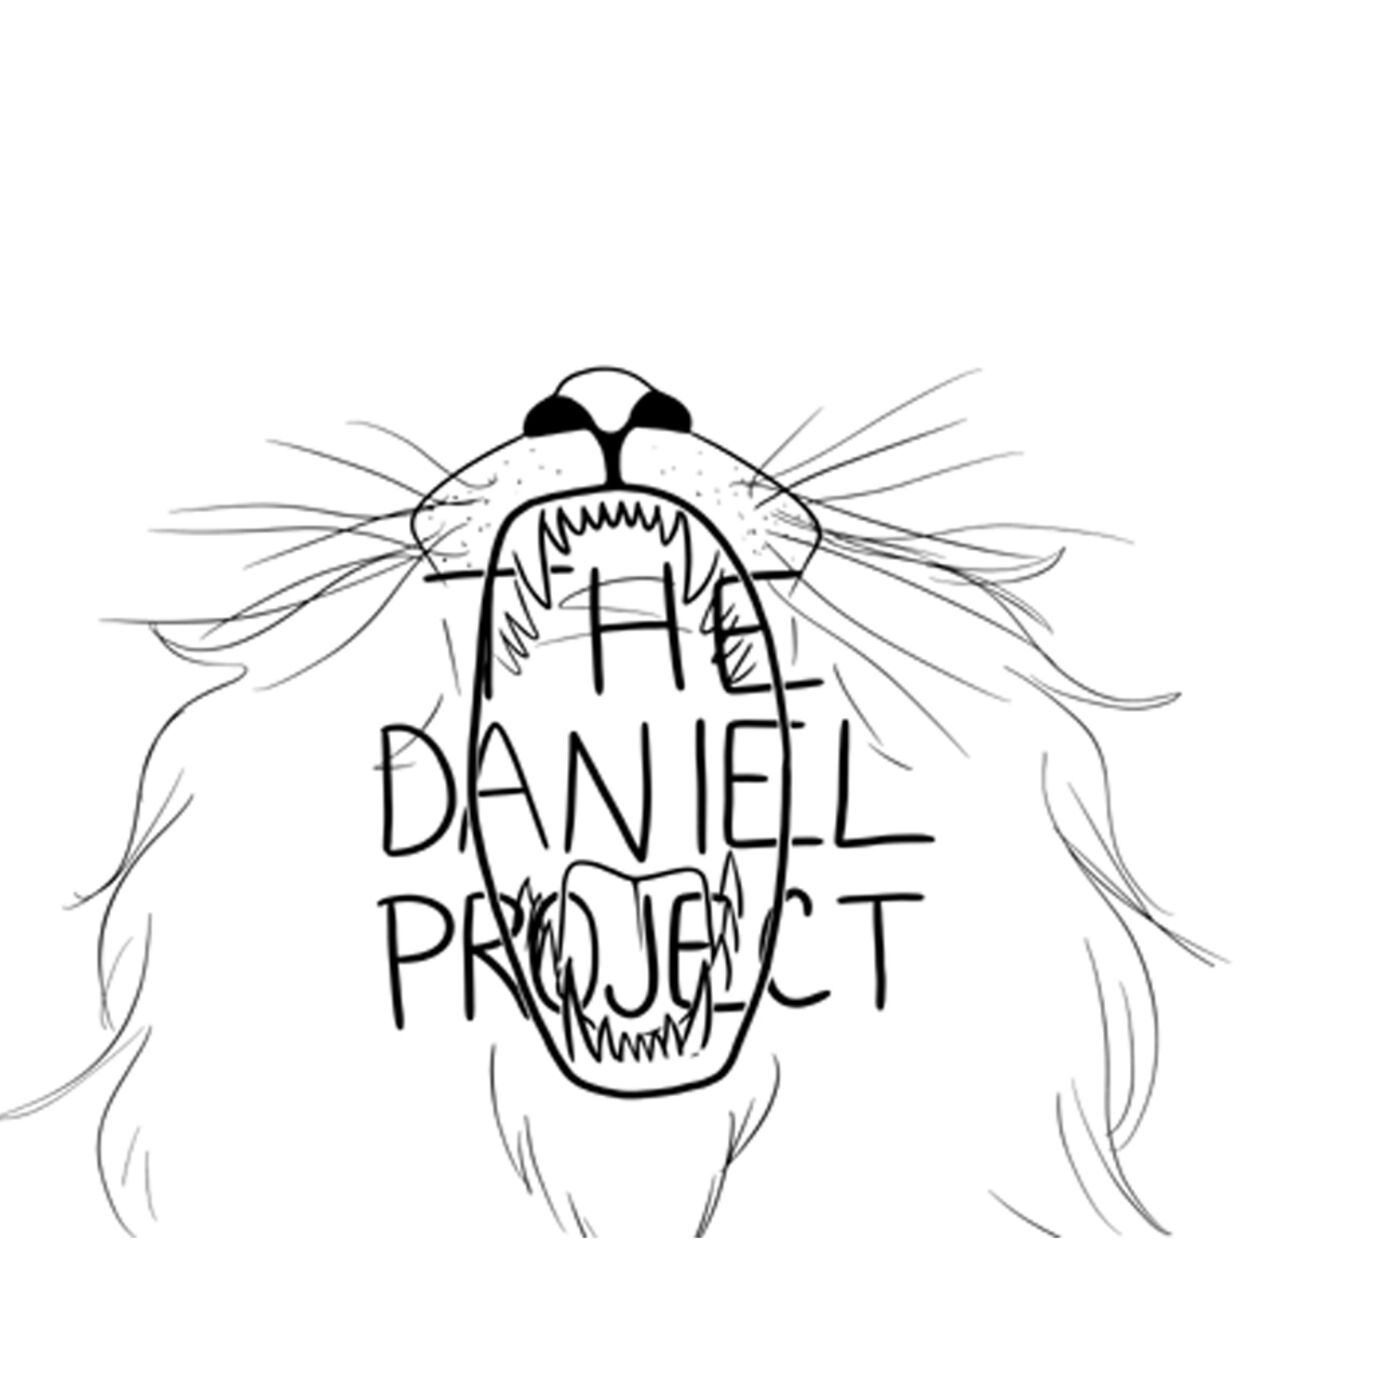 The Daniel Project: Part One (Keith Brunson)